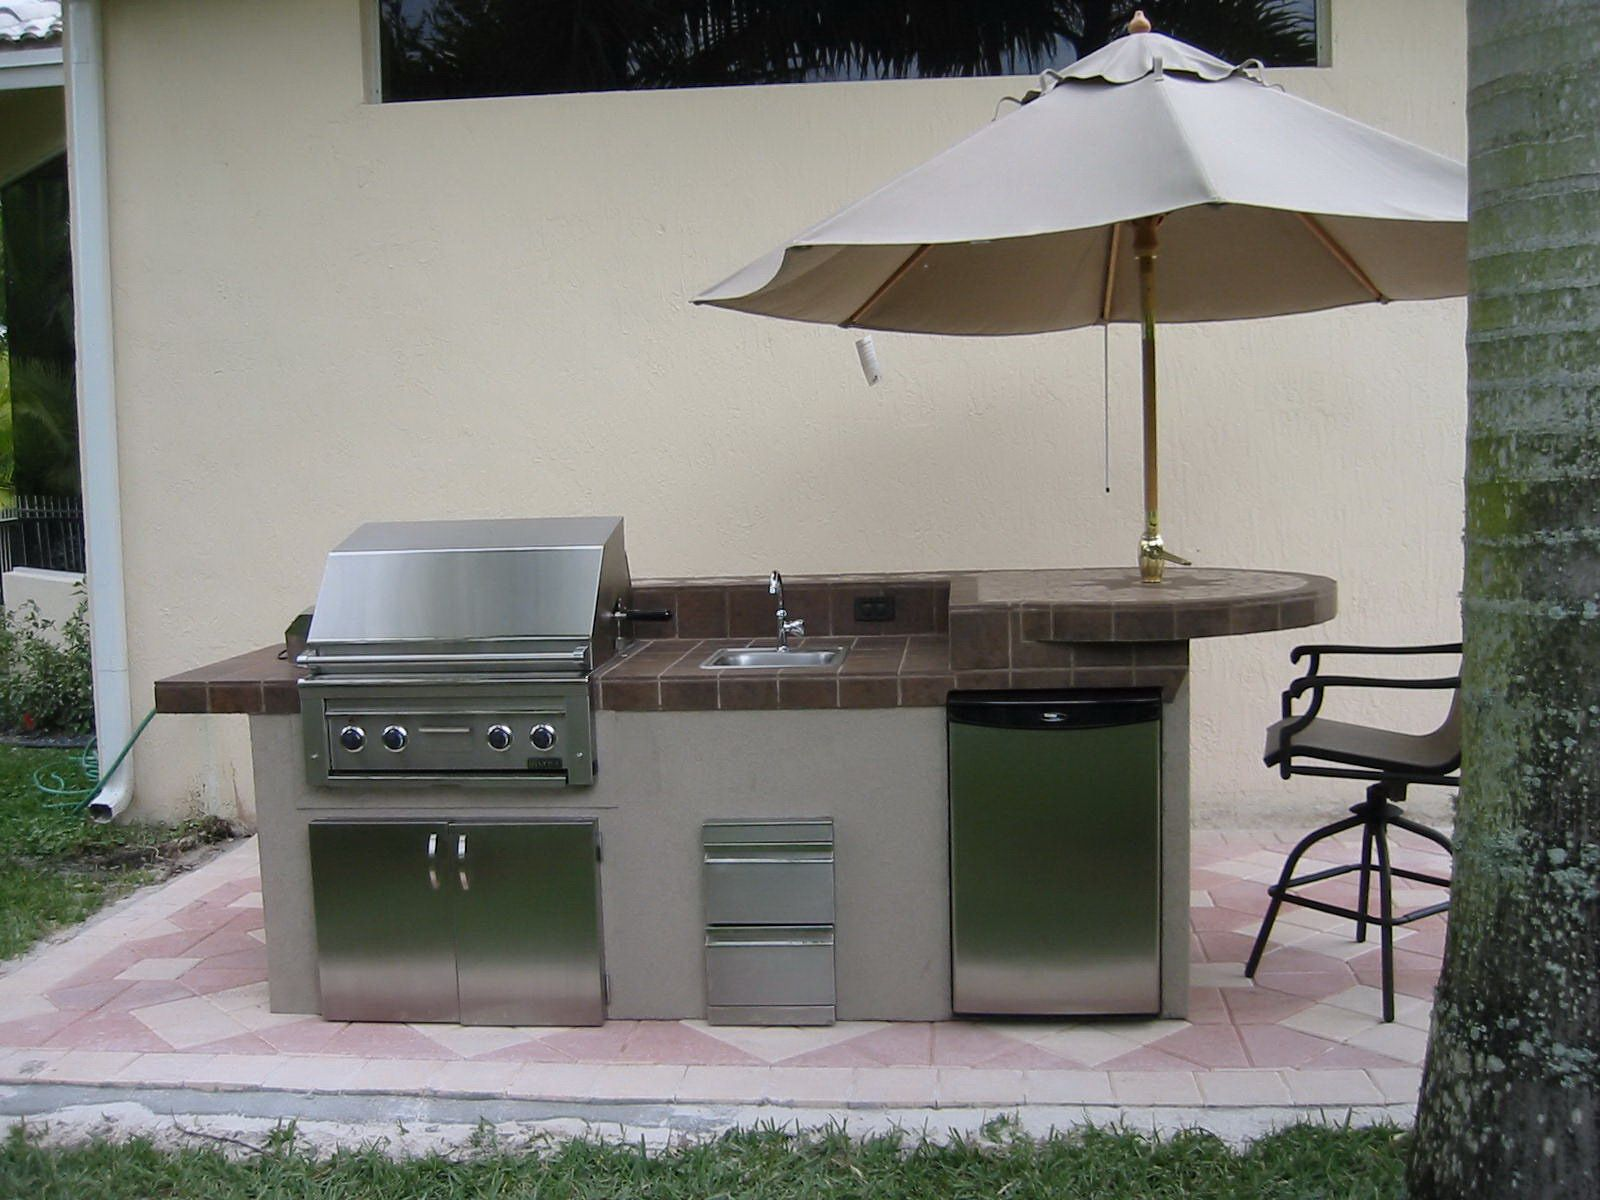 Outdoor Kitchen Design Images Small Outdoor Kitchens Small Outdoor Kitchen Design Outdoor Kitchen Grill